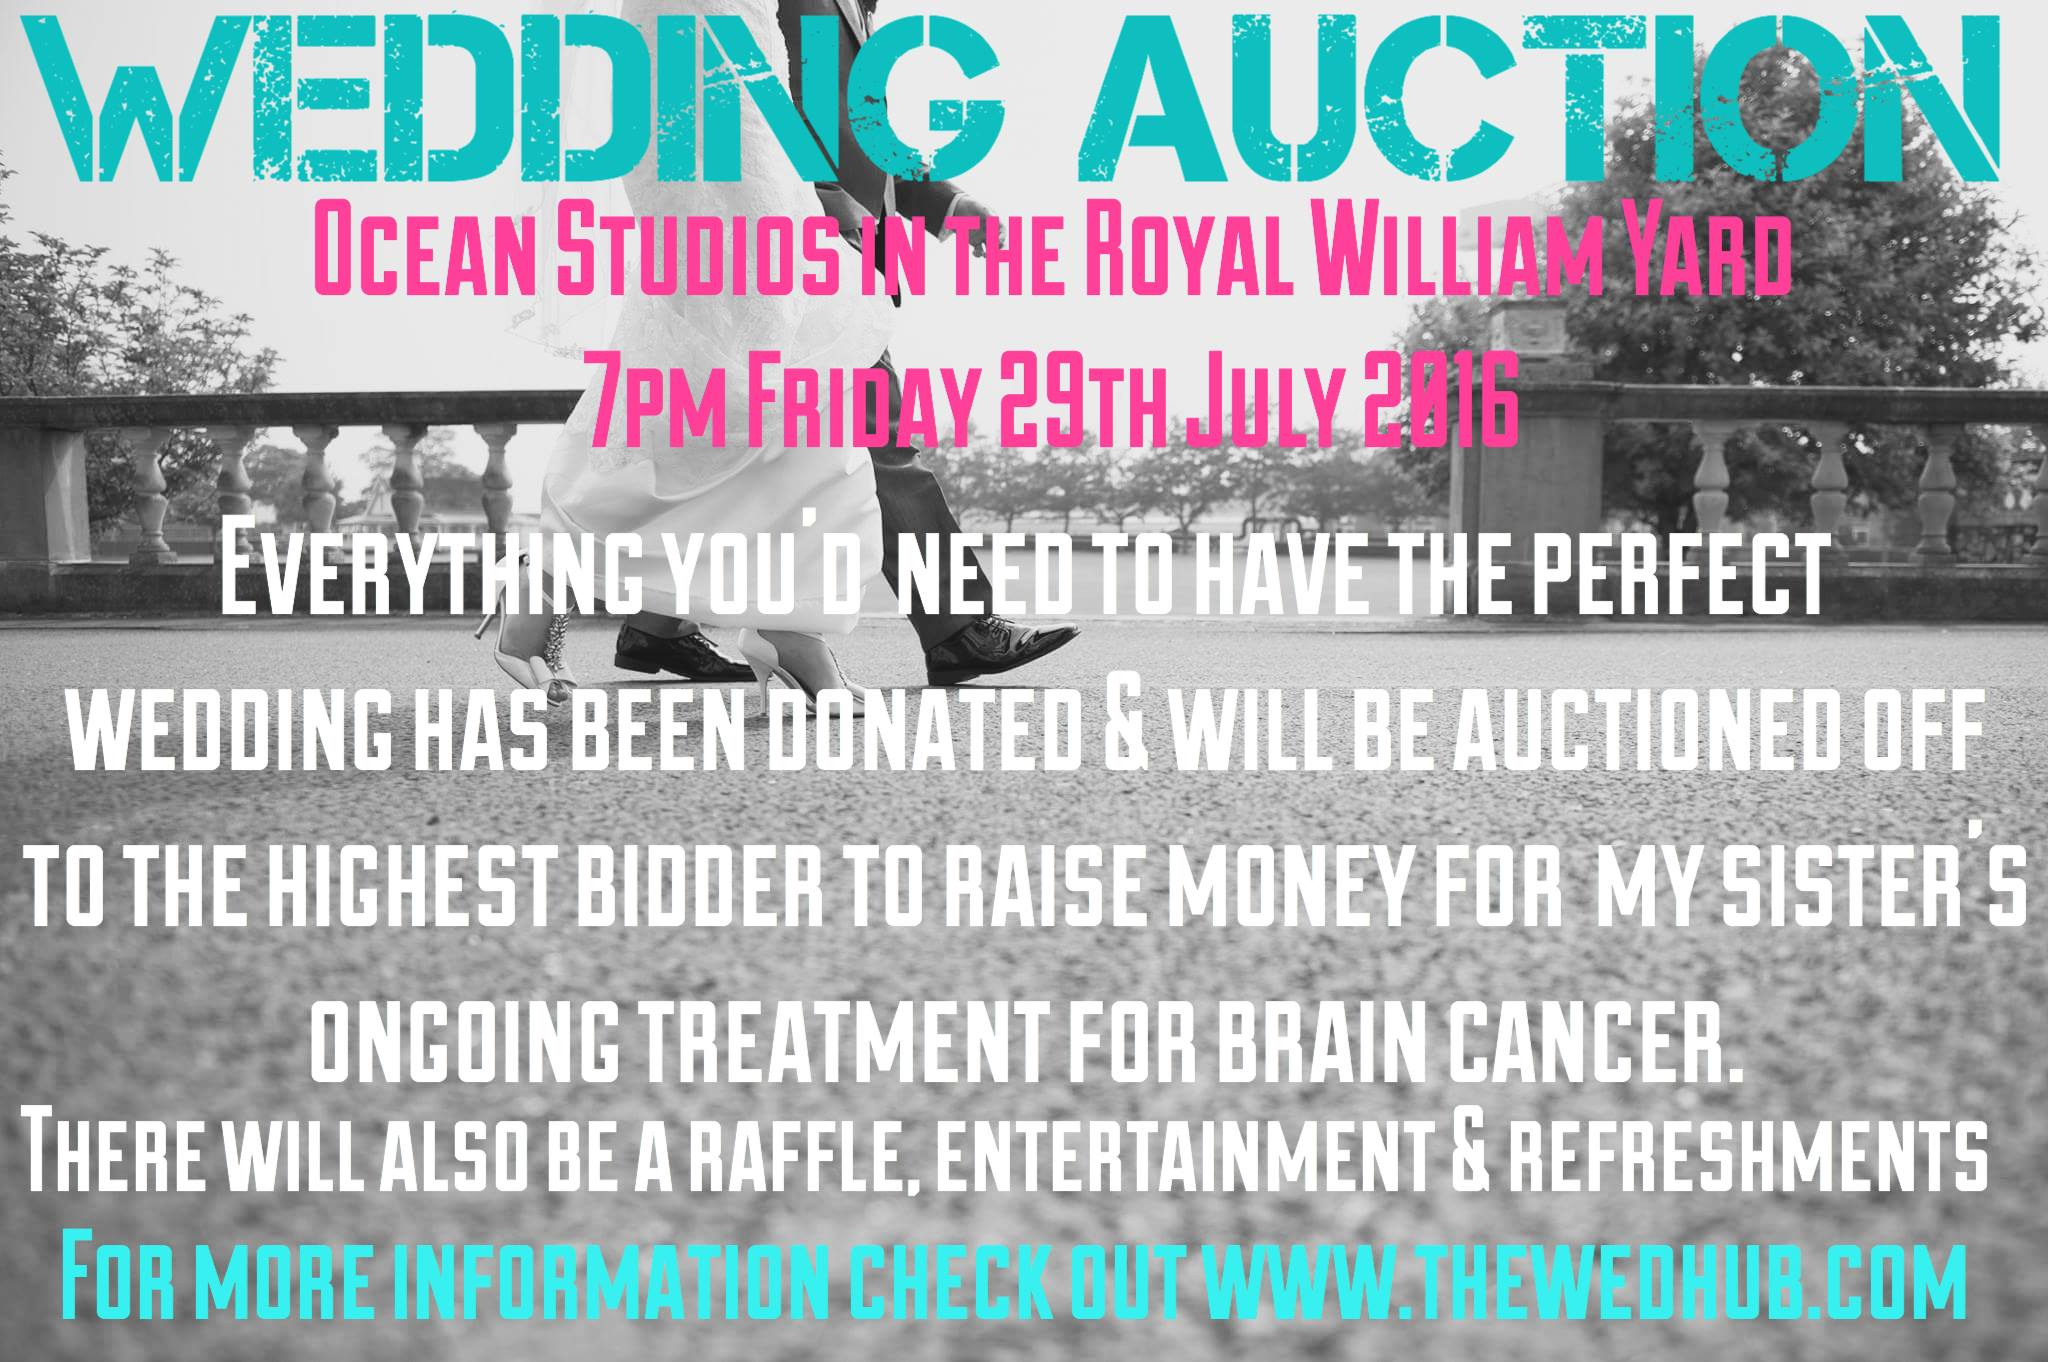 wedding auction, the wedding hub plymouth, brain cancer , MrsPandPs Sunday Morning Cuppa , Wedding Blog Catch up